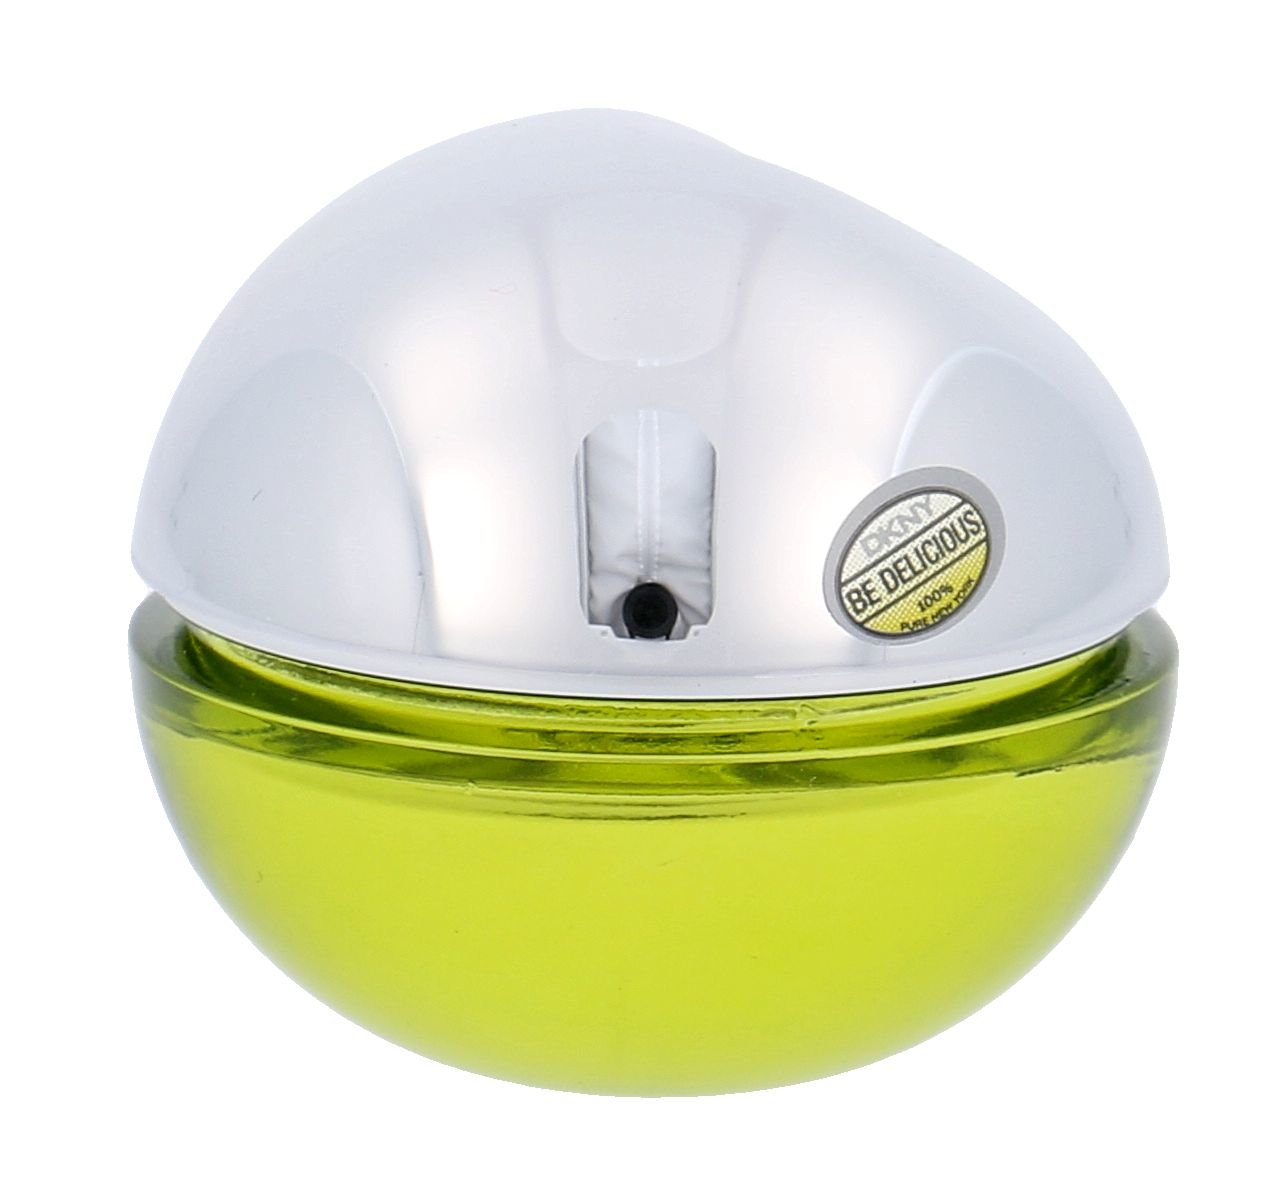 DKNY DKNY Be Delicious EDP 7ml